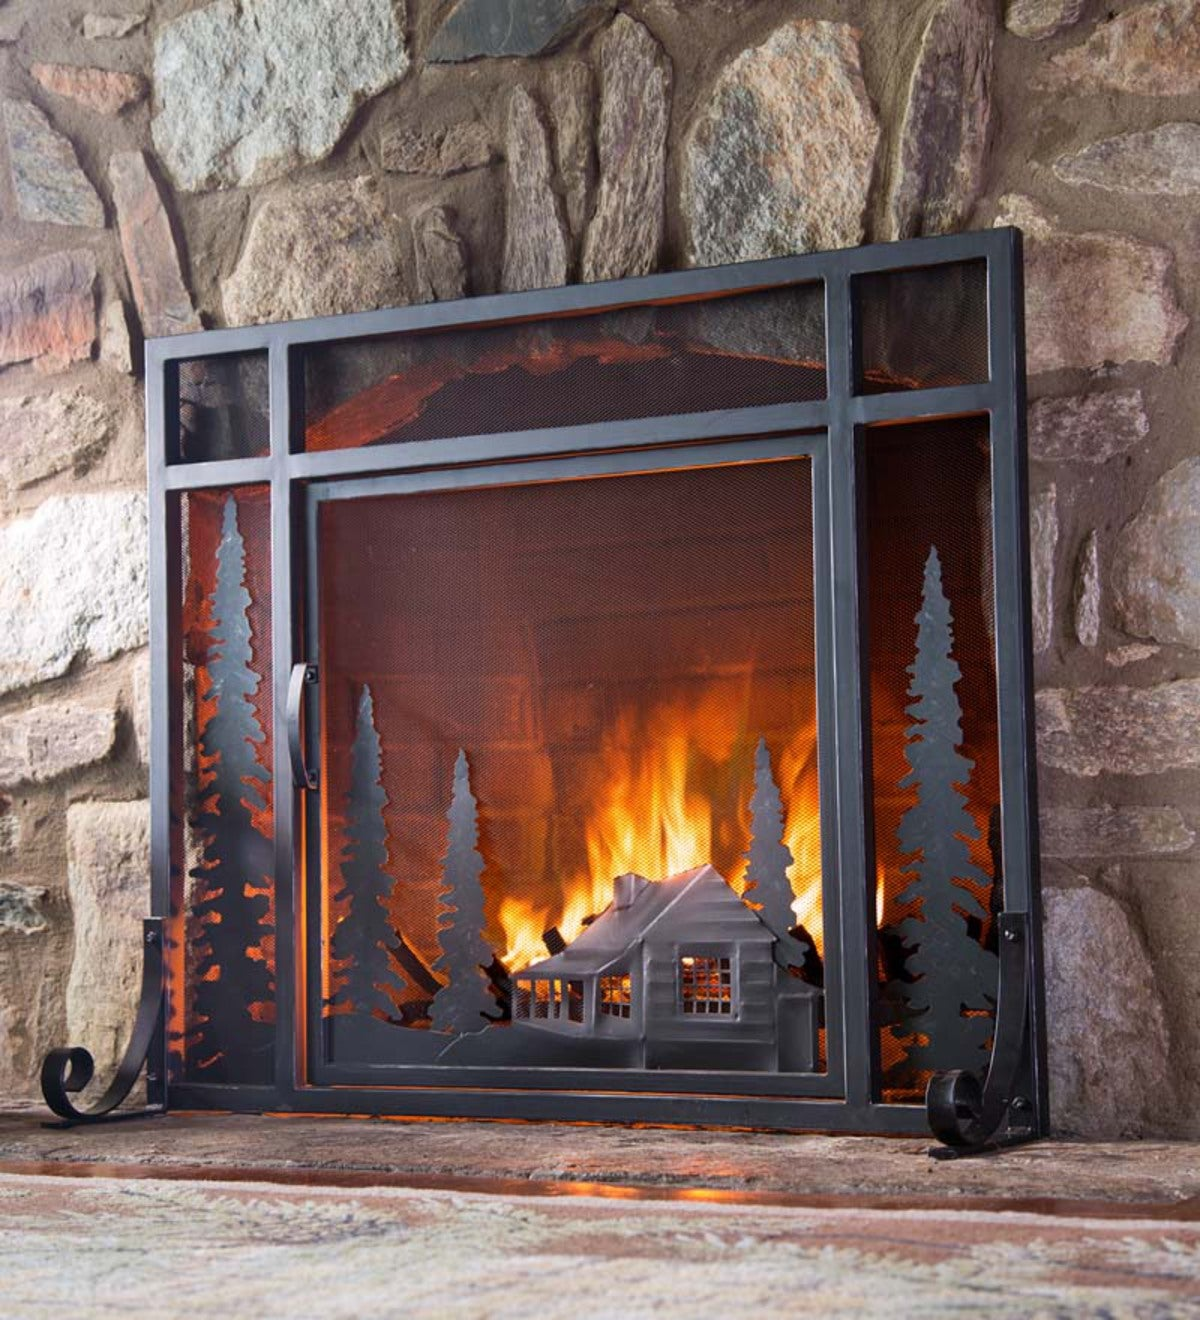 Large Mountain Cabin Fire Screen With Door - Black